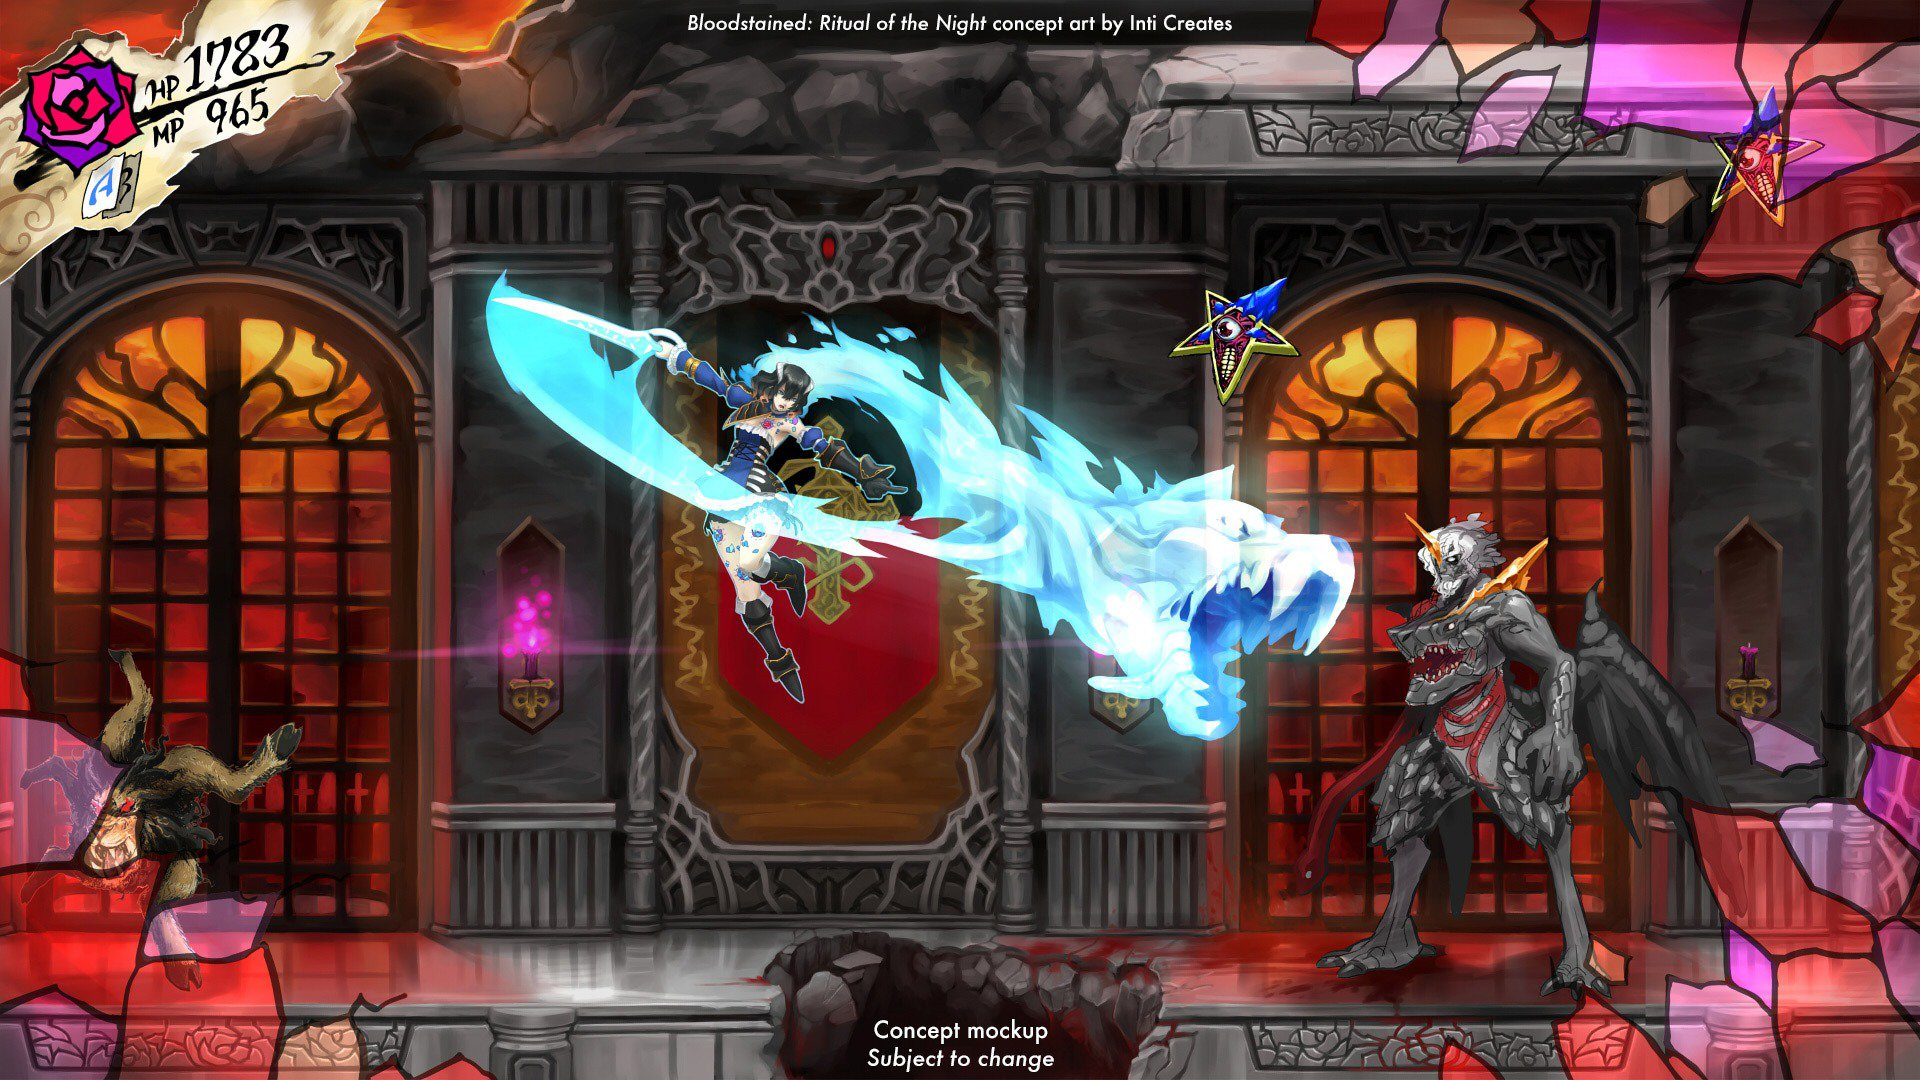 Bloodstained: Ritual of the Night coming to PlayStation Vita